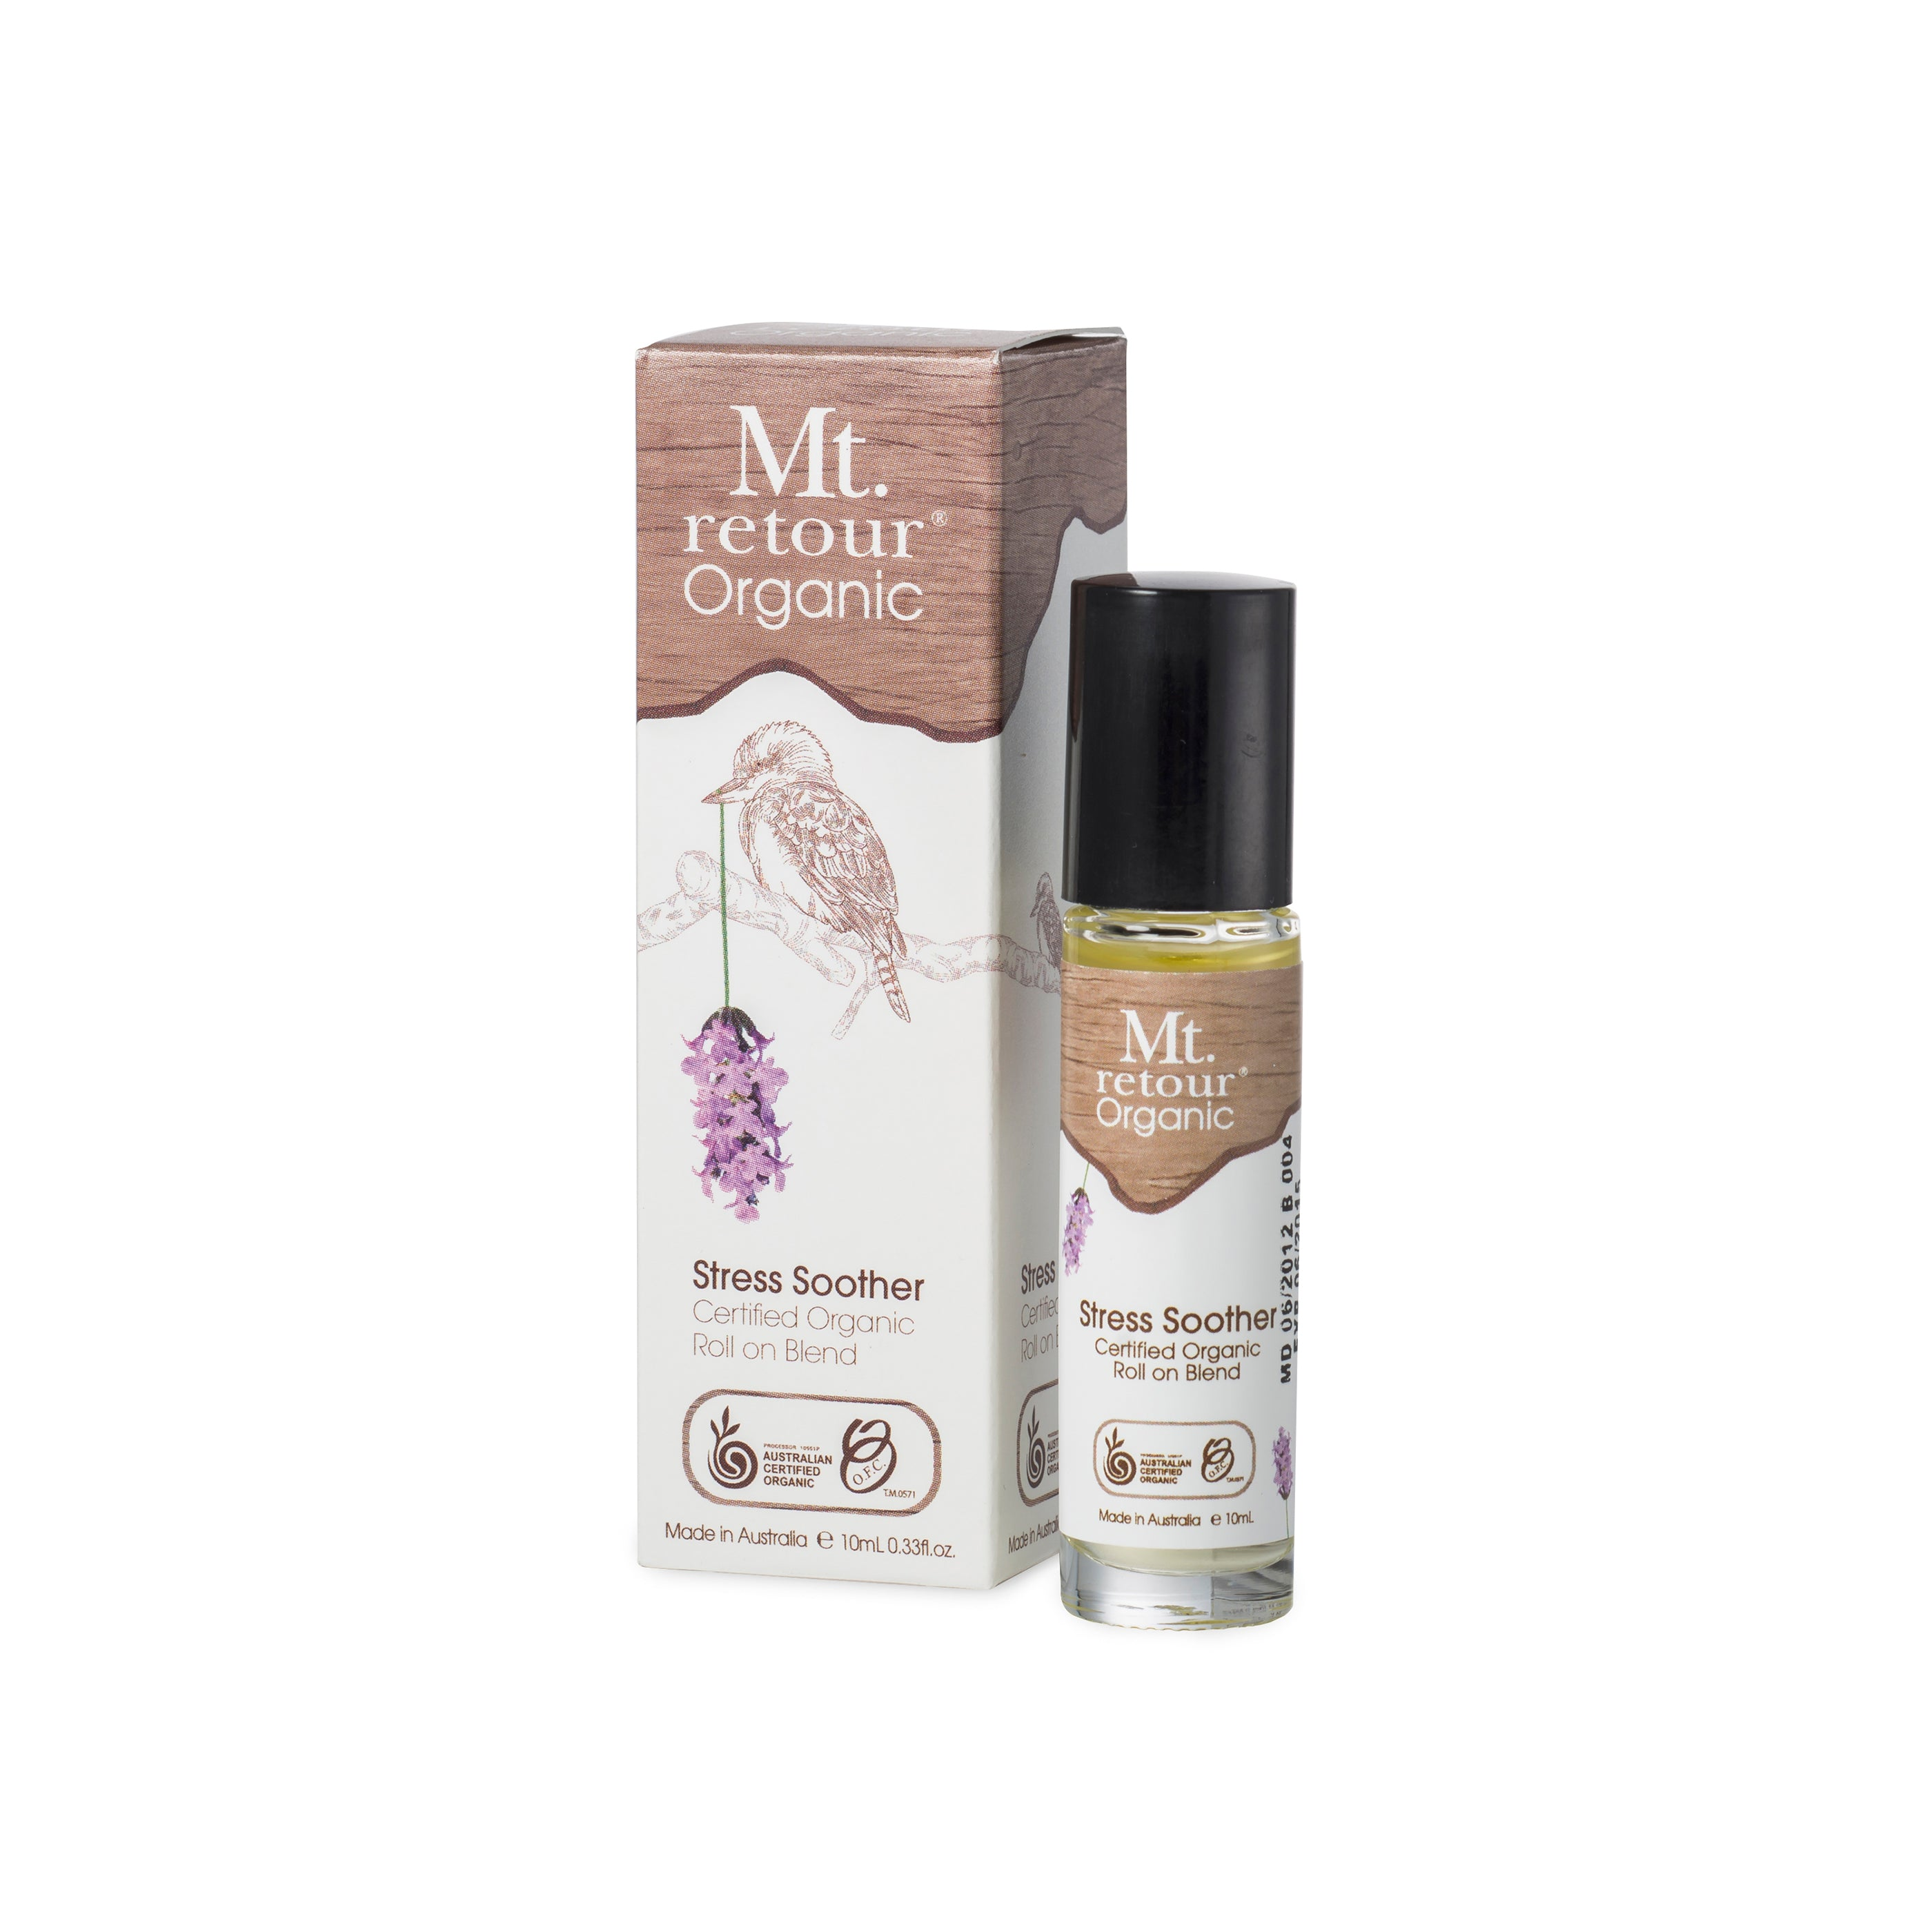 Mt Retour Stress Soother Certified Organic Roll On Blend (10ml)